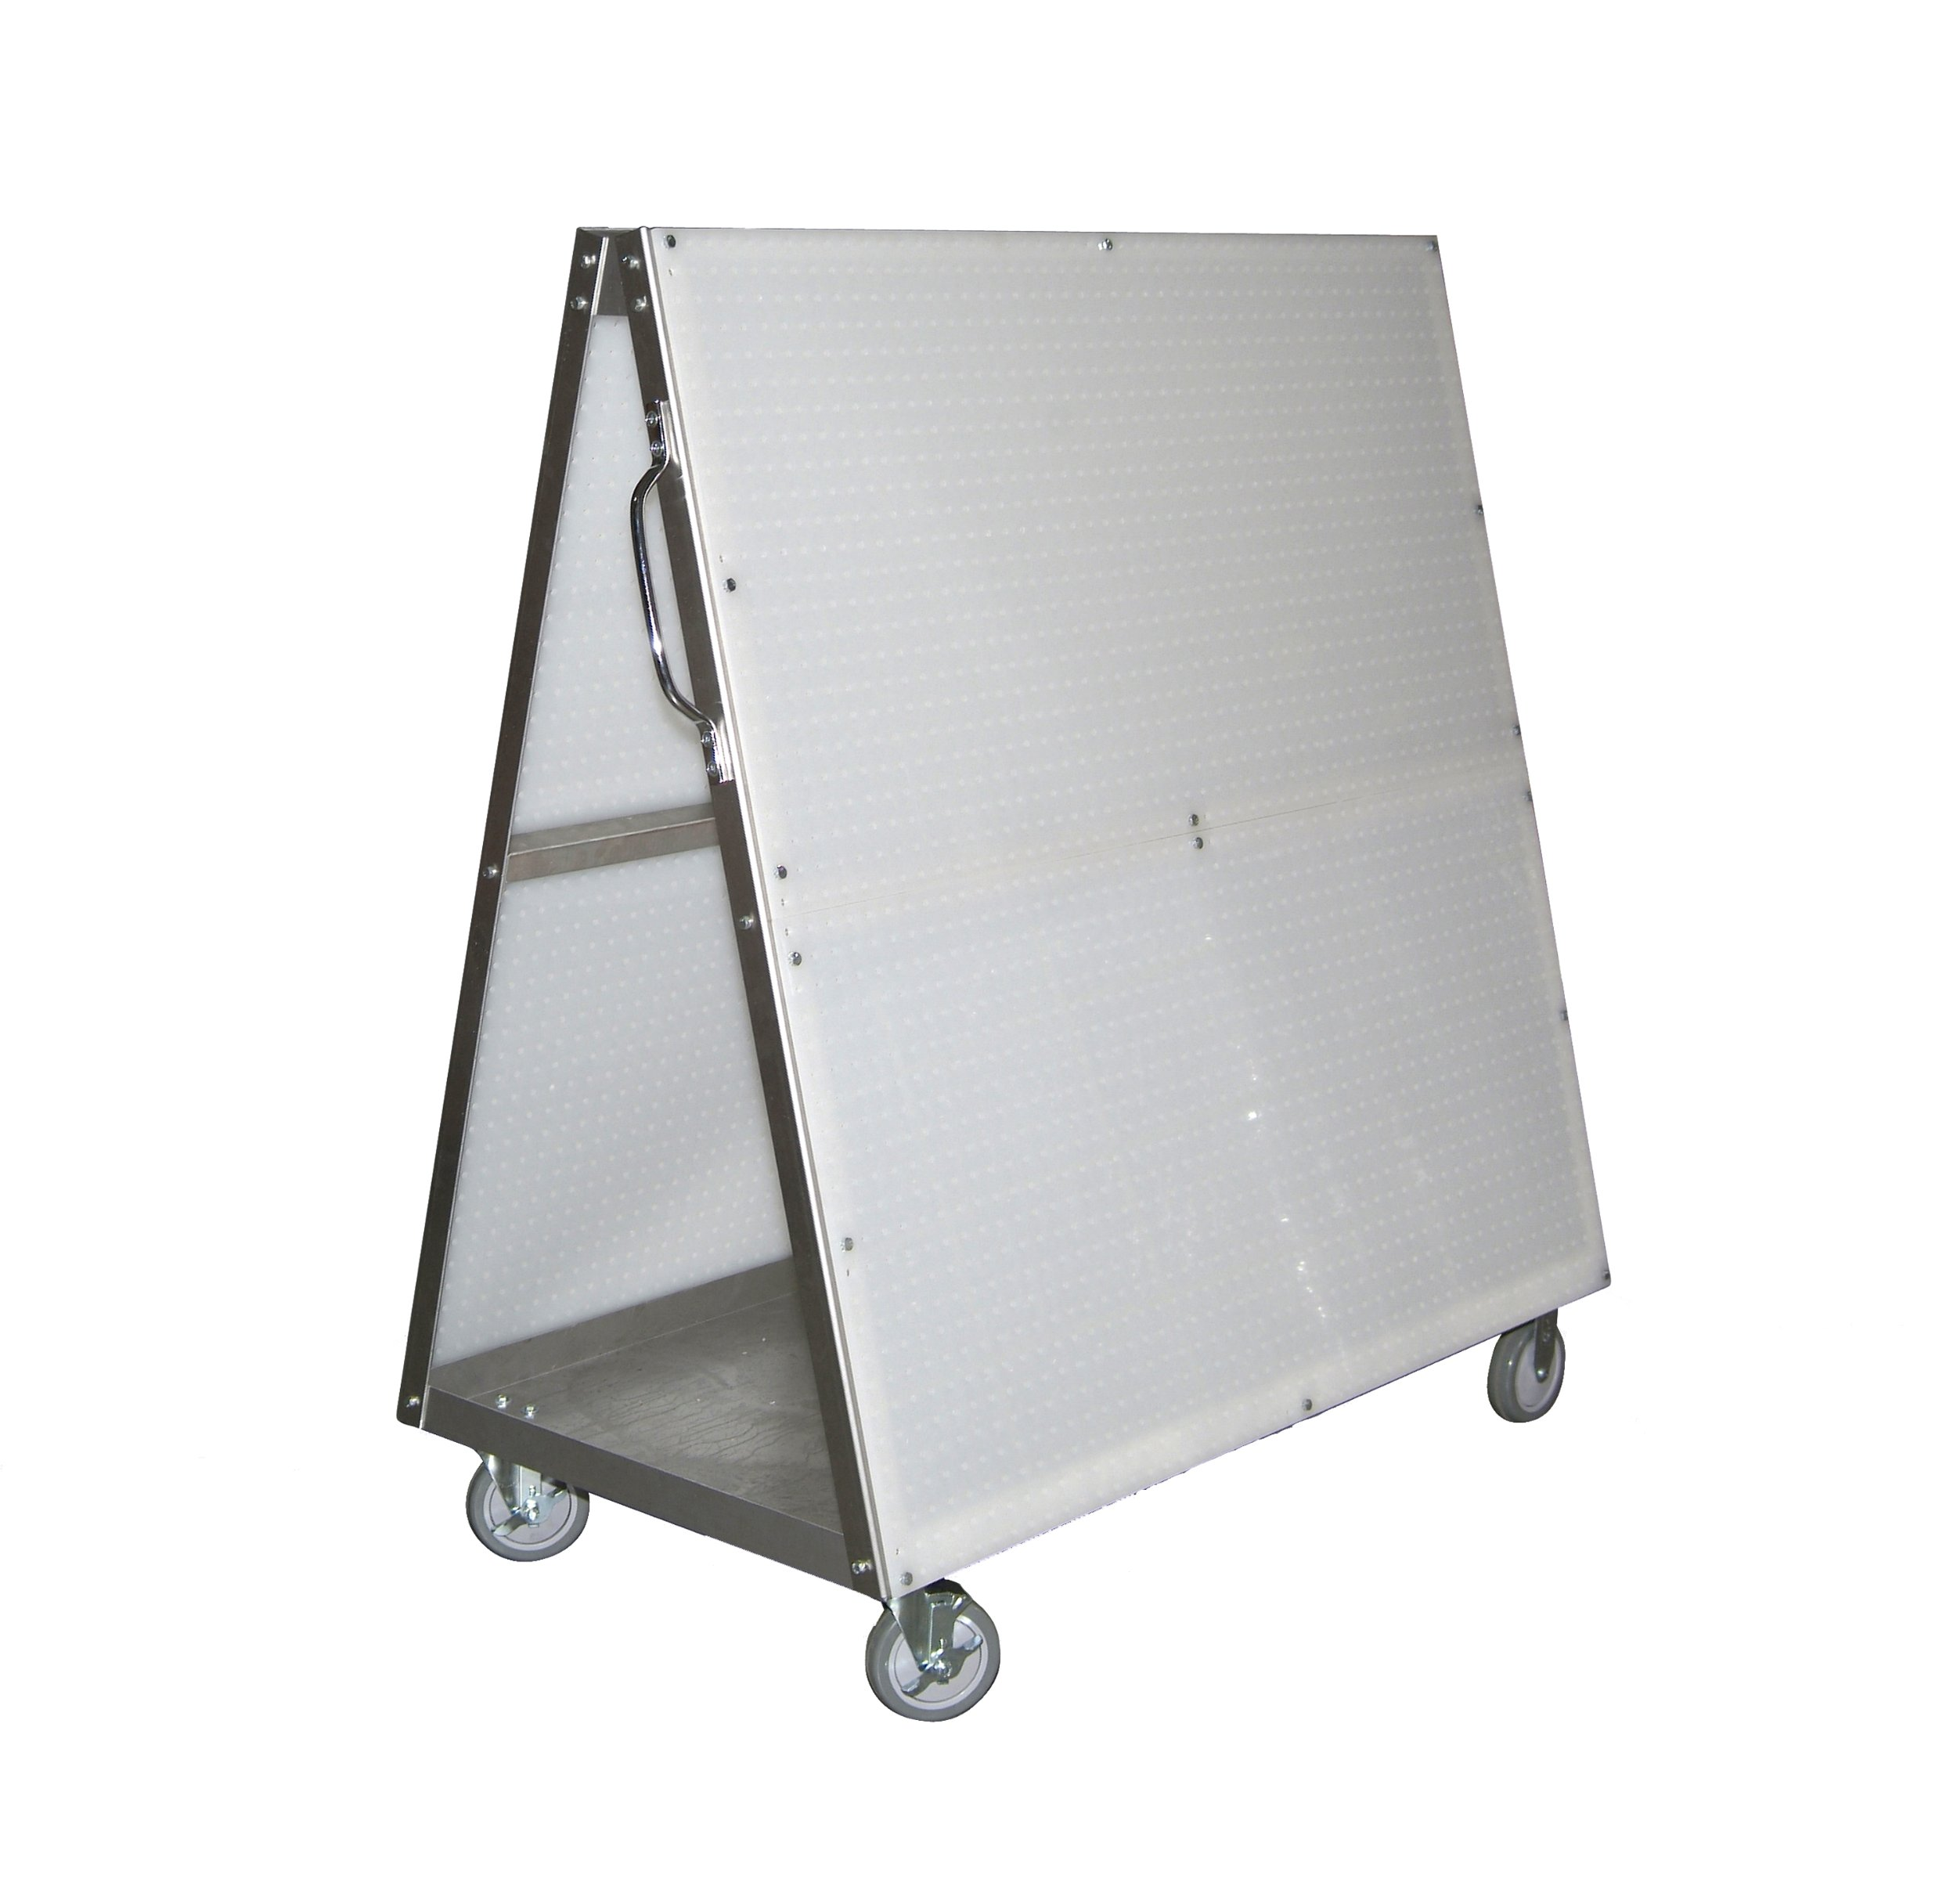 Triton Products DBC-4 DuraBoard Mobile Tool Cart 48-Inch L by 51-1/2-Inch H by 29-3/4-Inch W Aluminum Frame with Tray